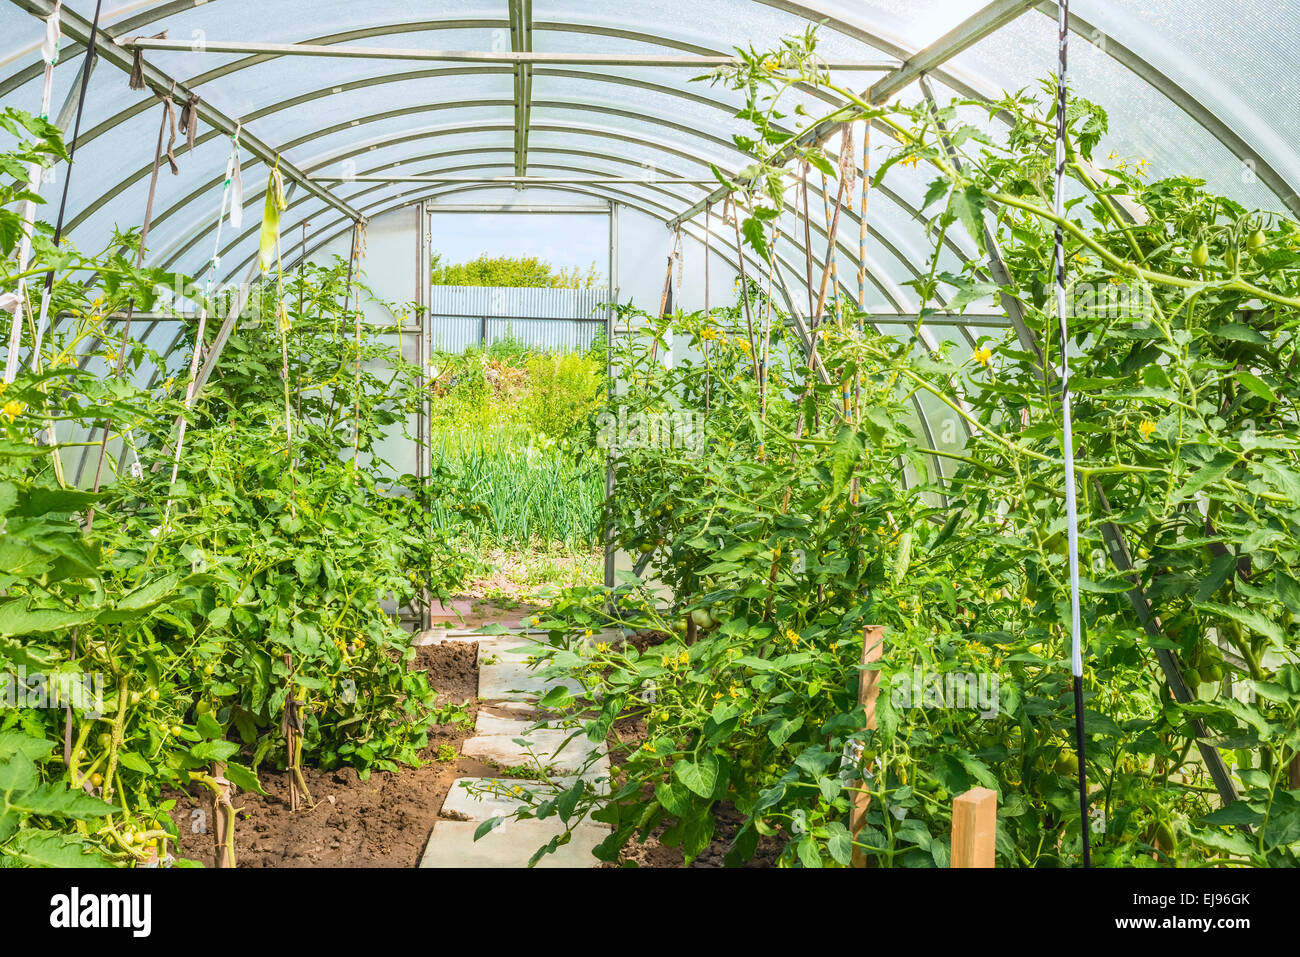 arched greenhouse - Stock Image